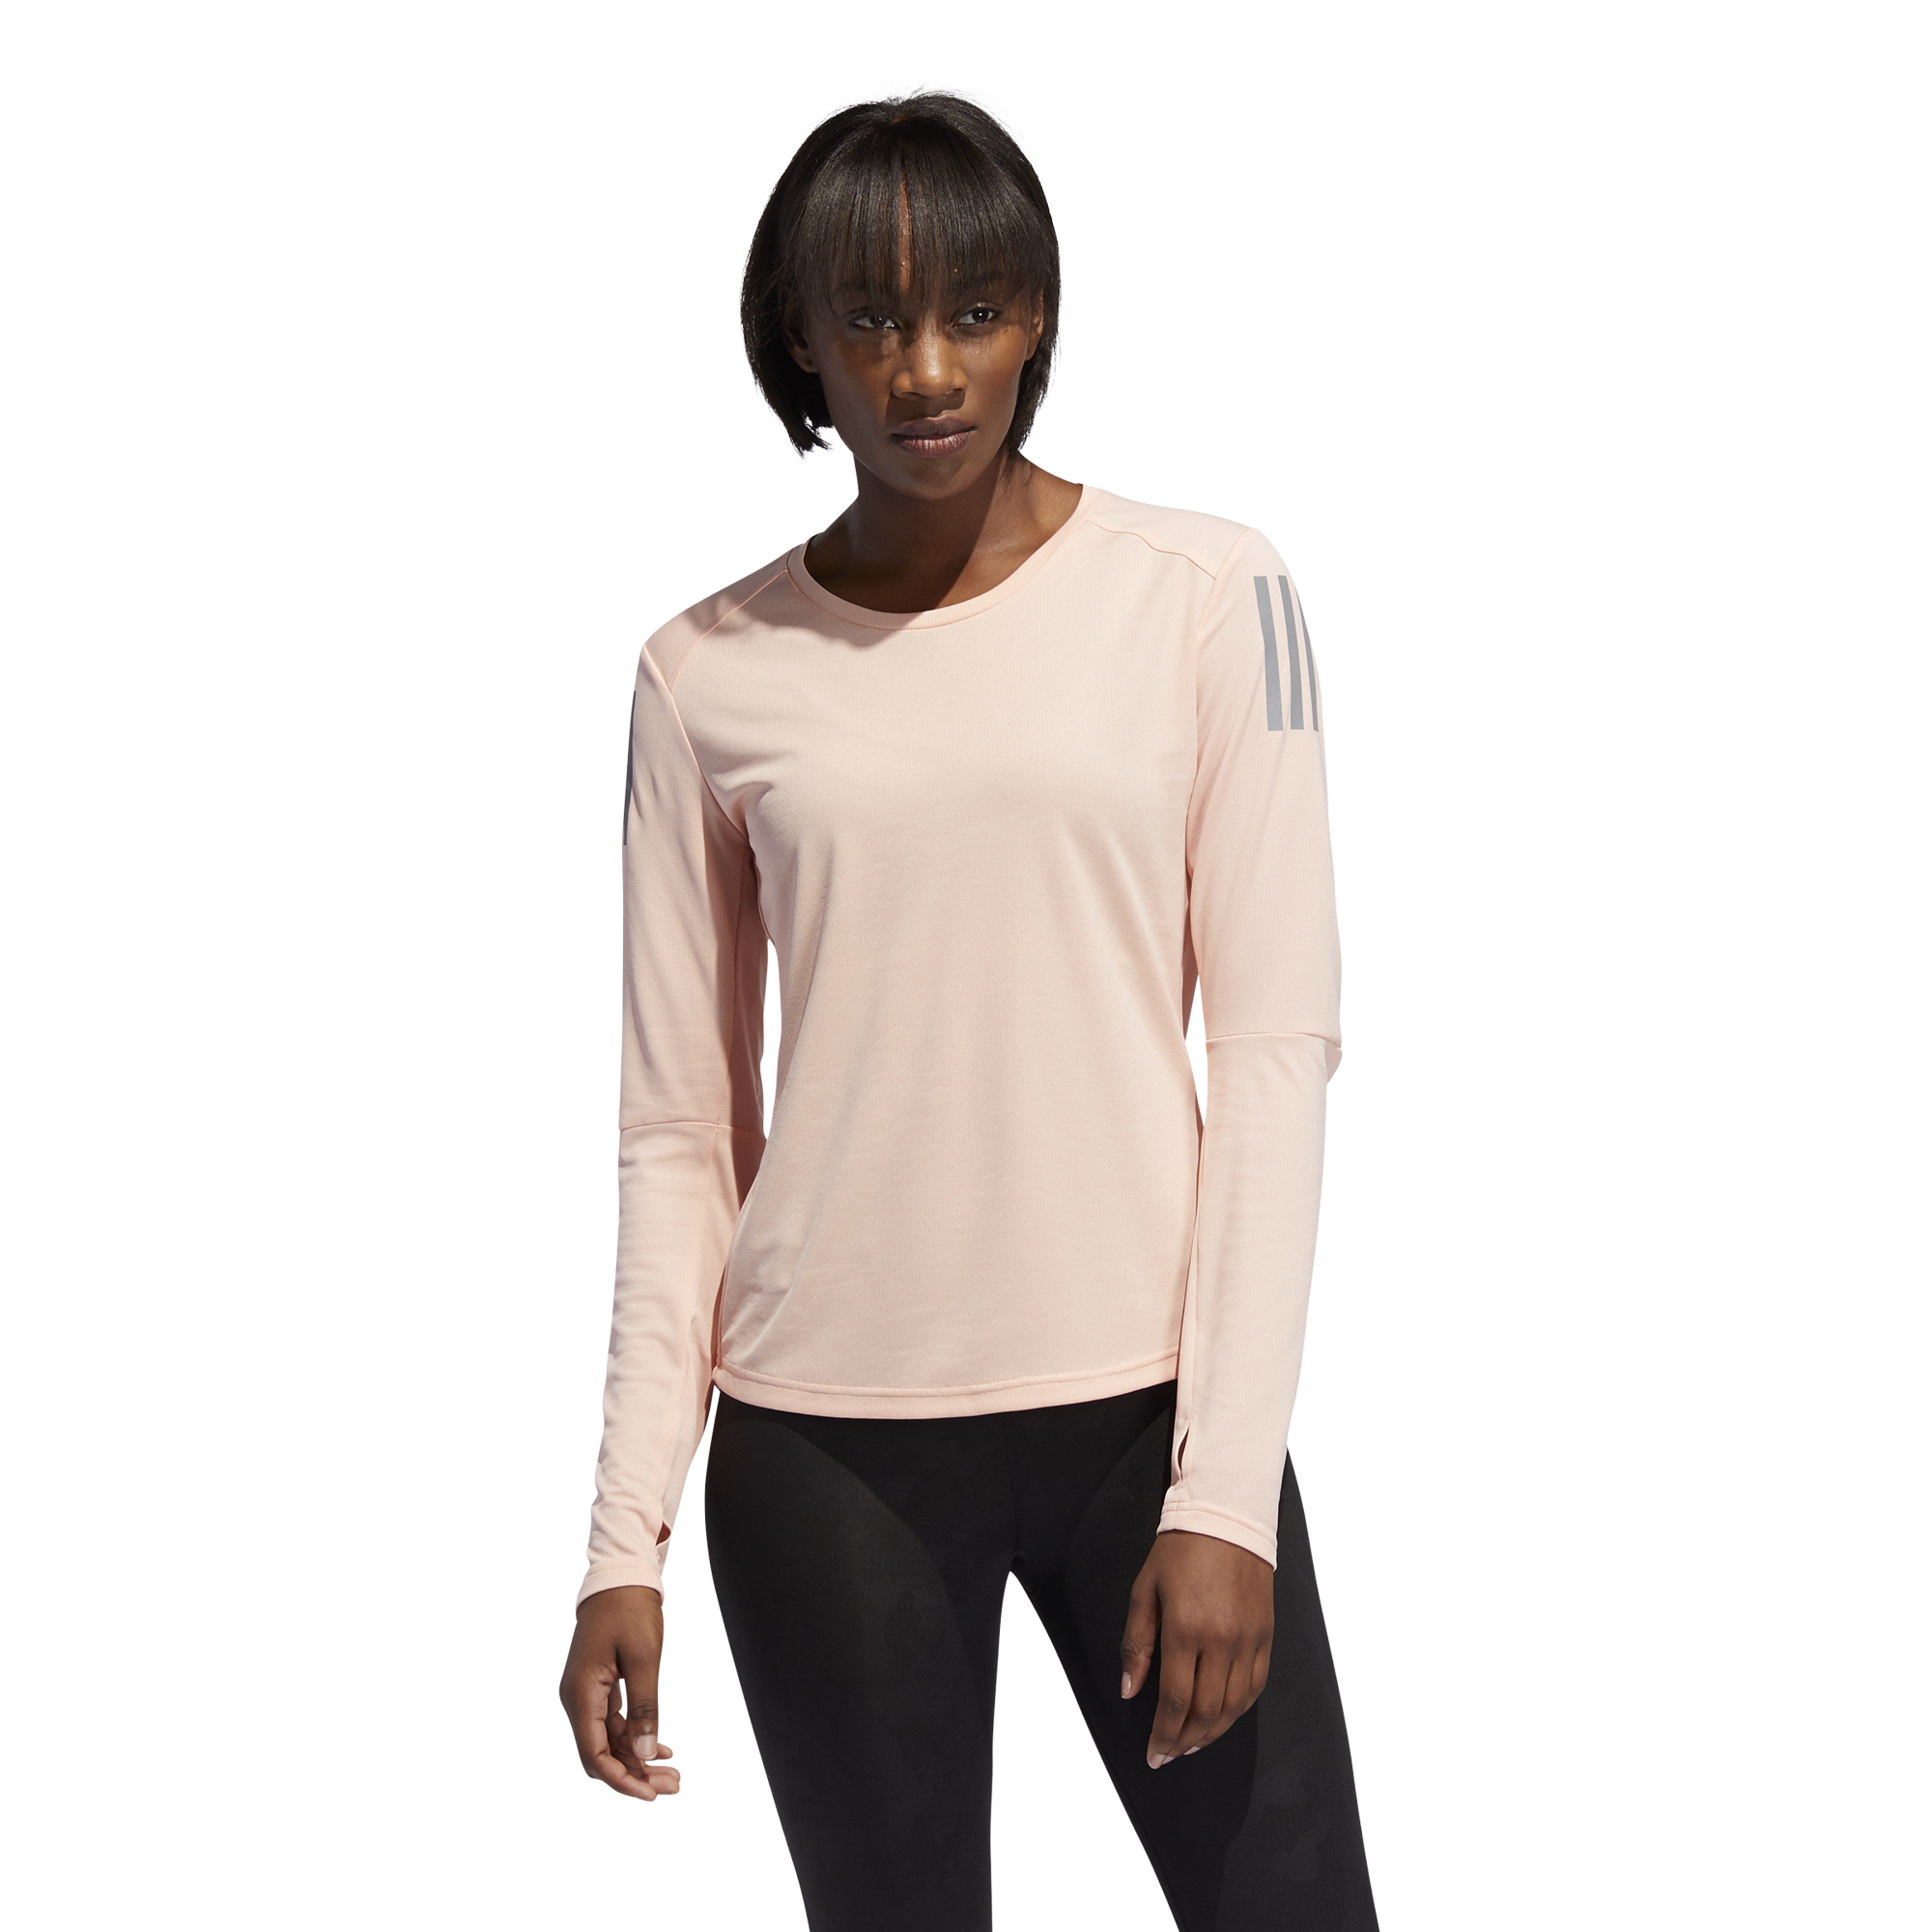 ADIDAS : Own The Run Long Sleeve Top